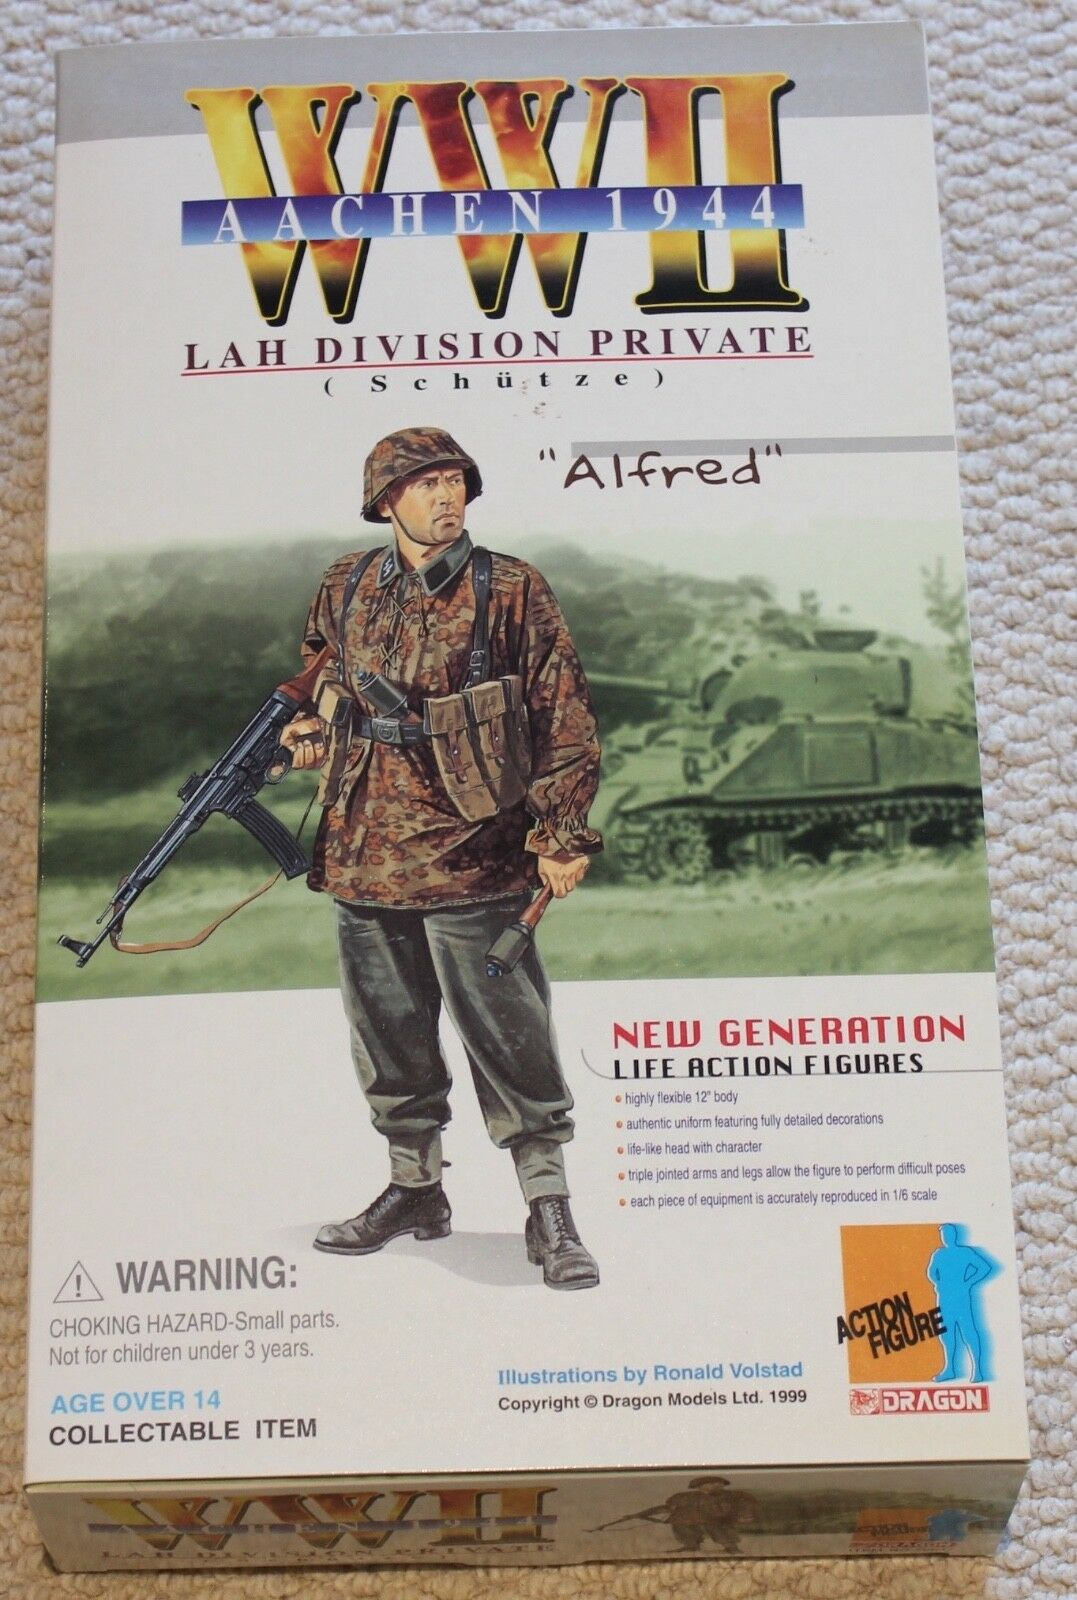 Dragon action figure 1 6 ww11 german alfred 12'' boxed did cyber hot toy